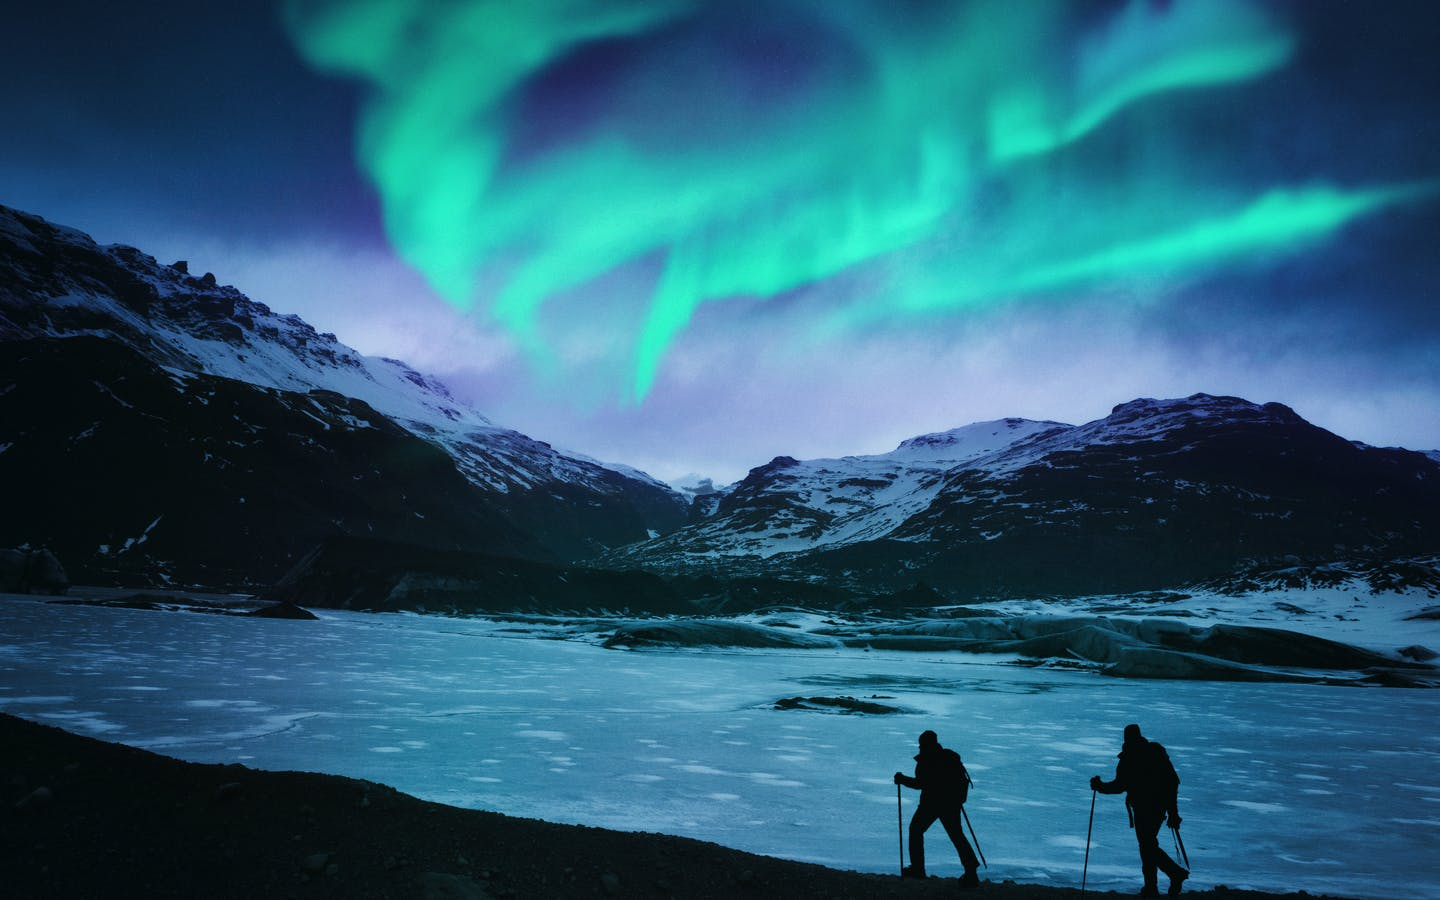 Hikers under the northern lights in Iceland.